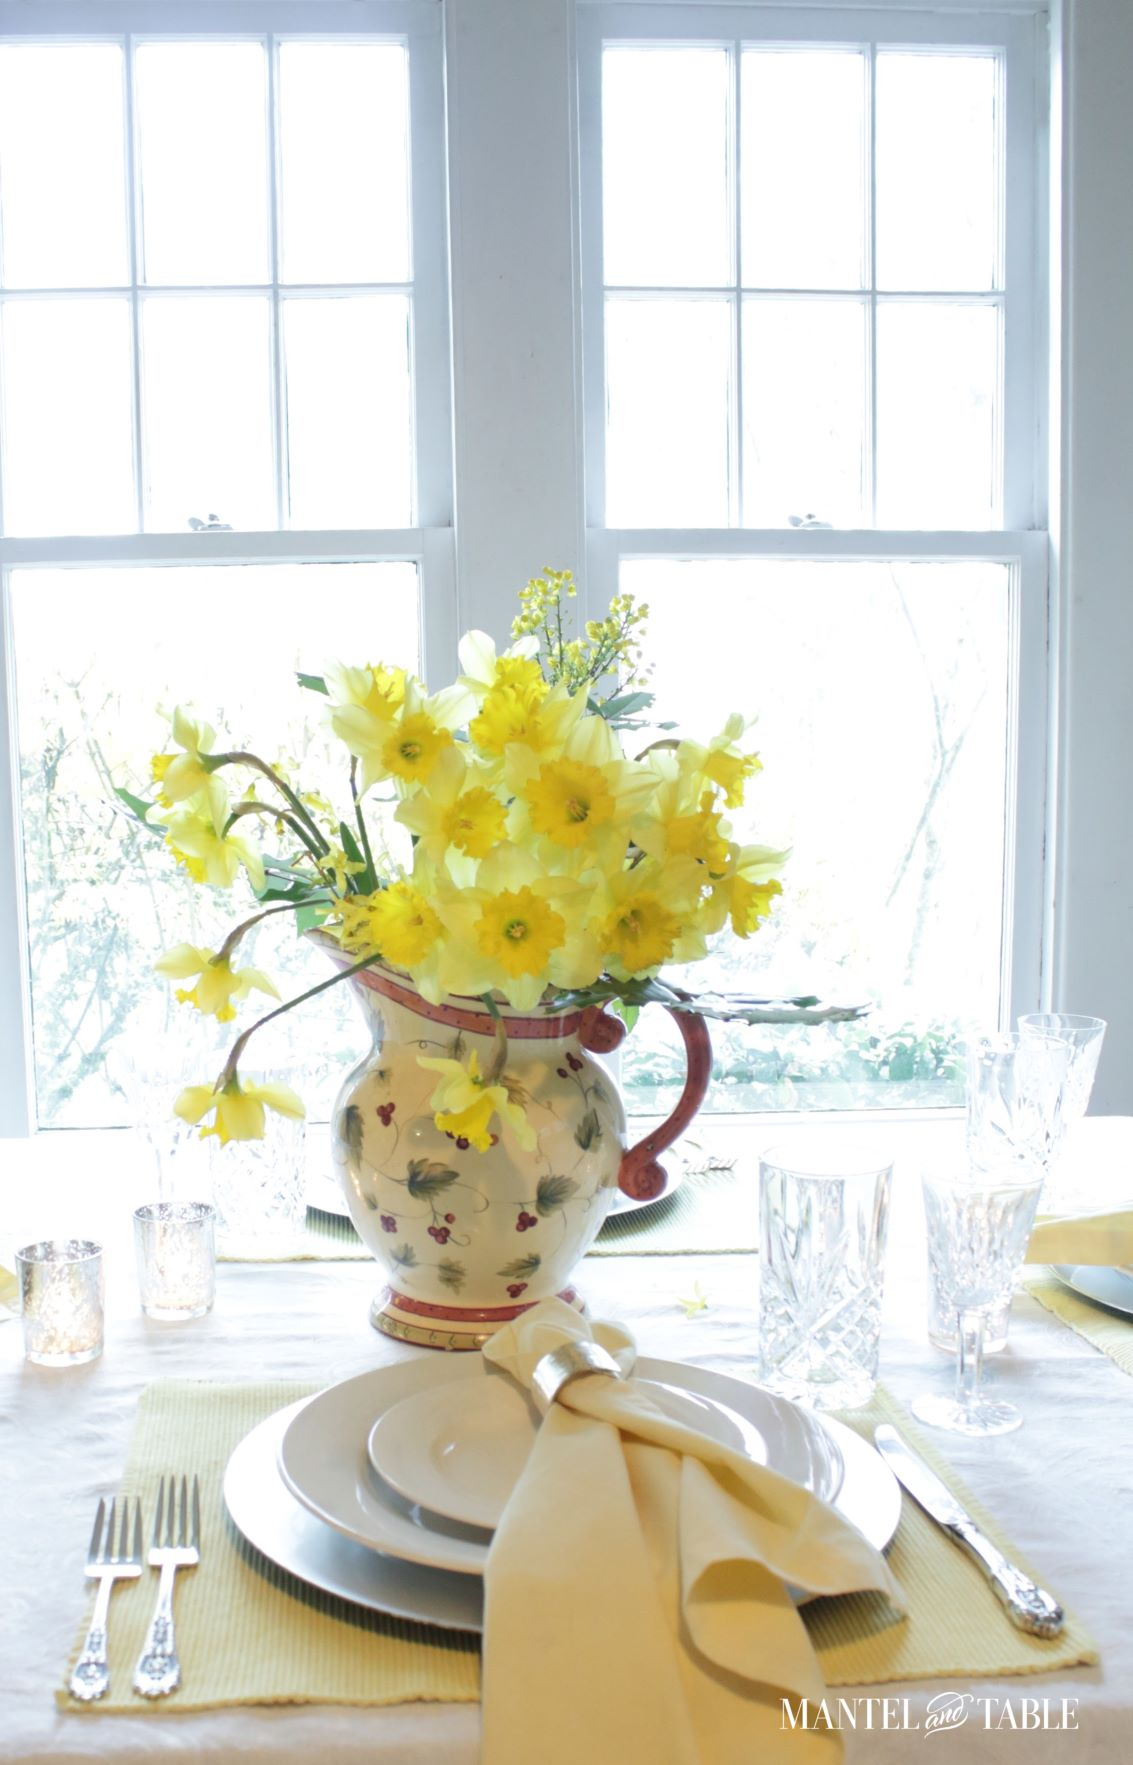 View out the window across daffodil table setting